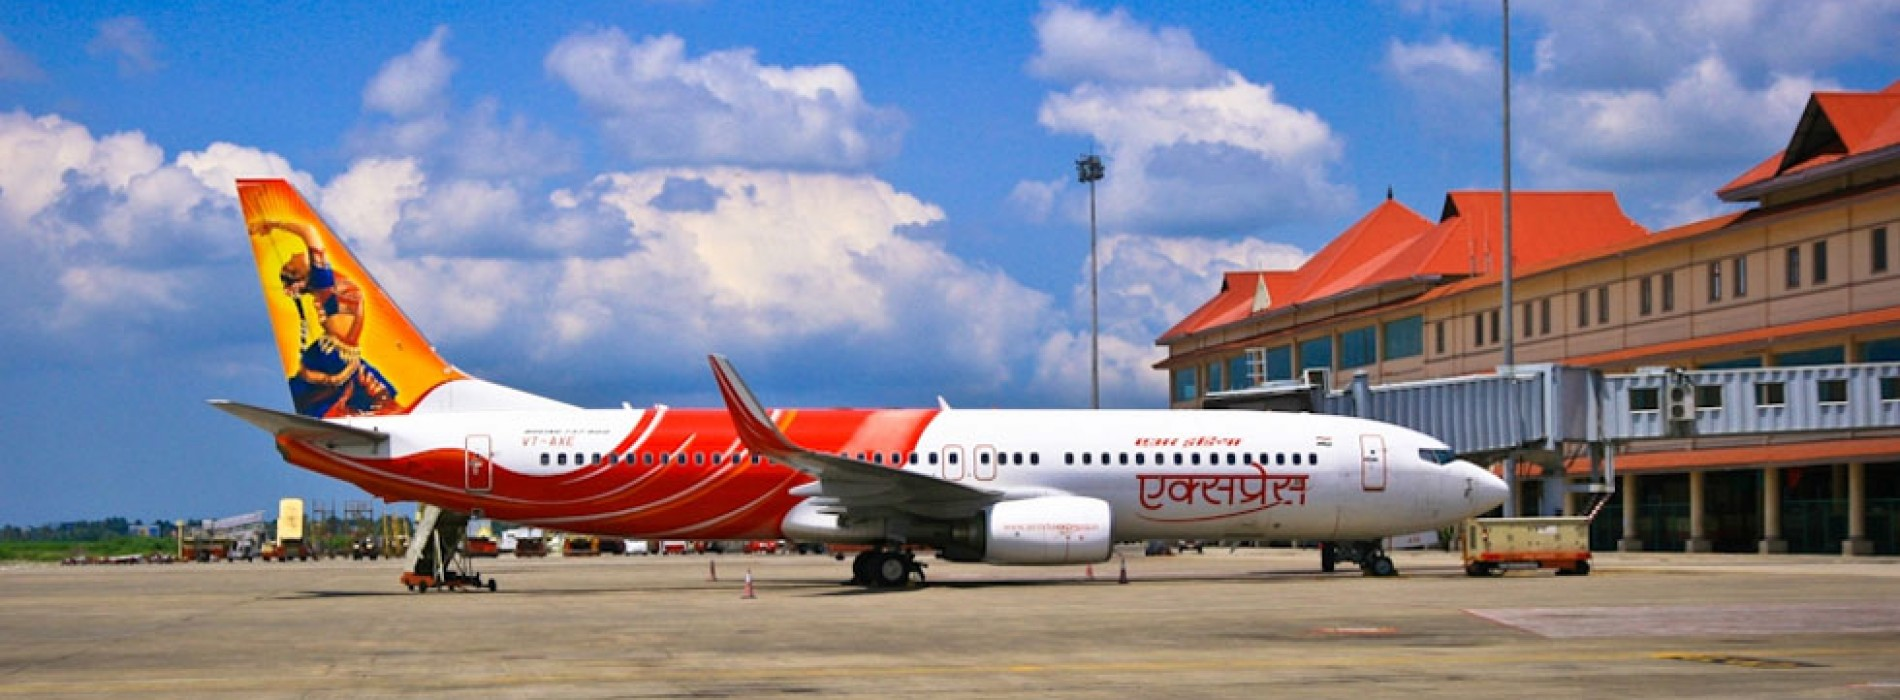 Kochi airport to open new terminal